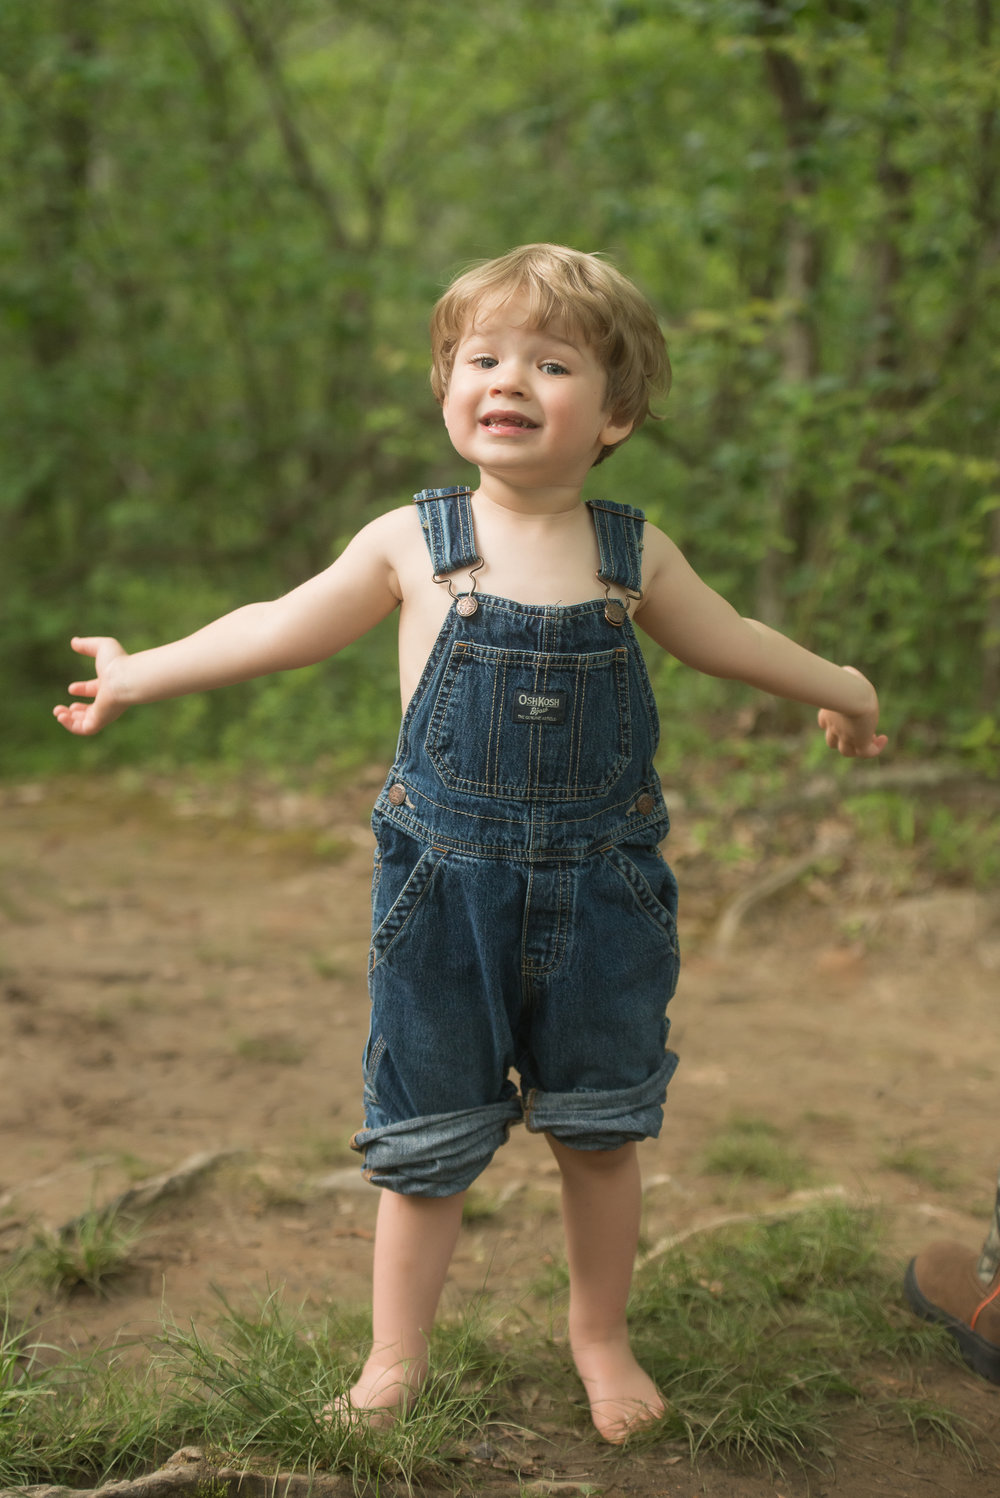 barefoot boy and overalls